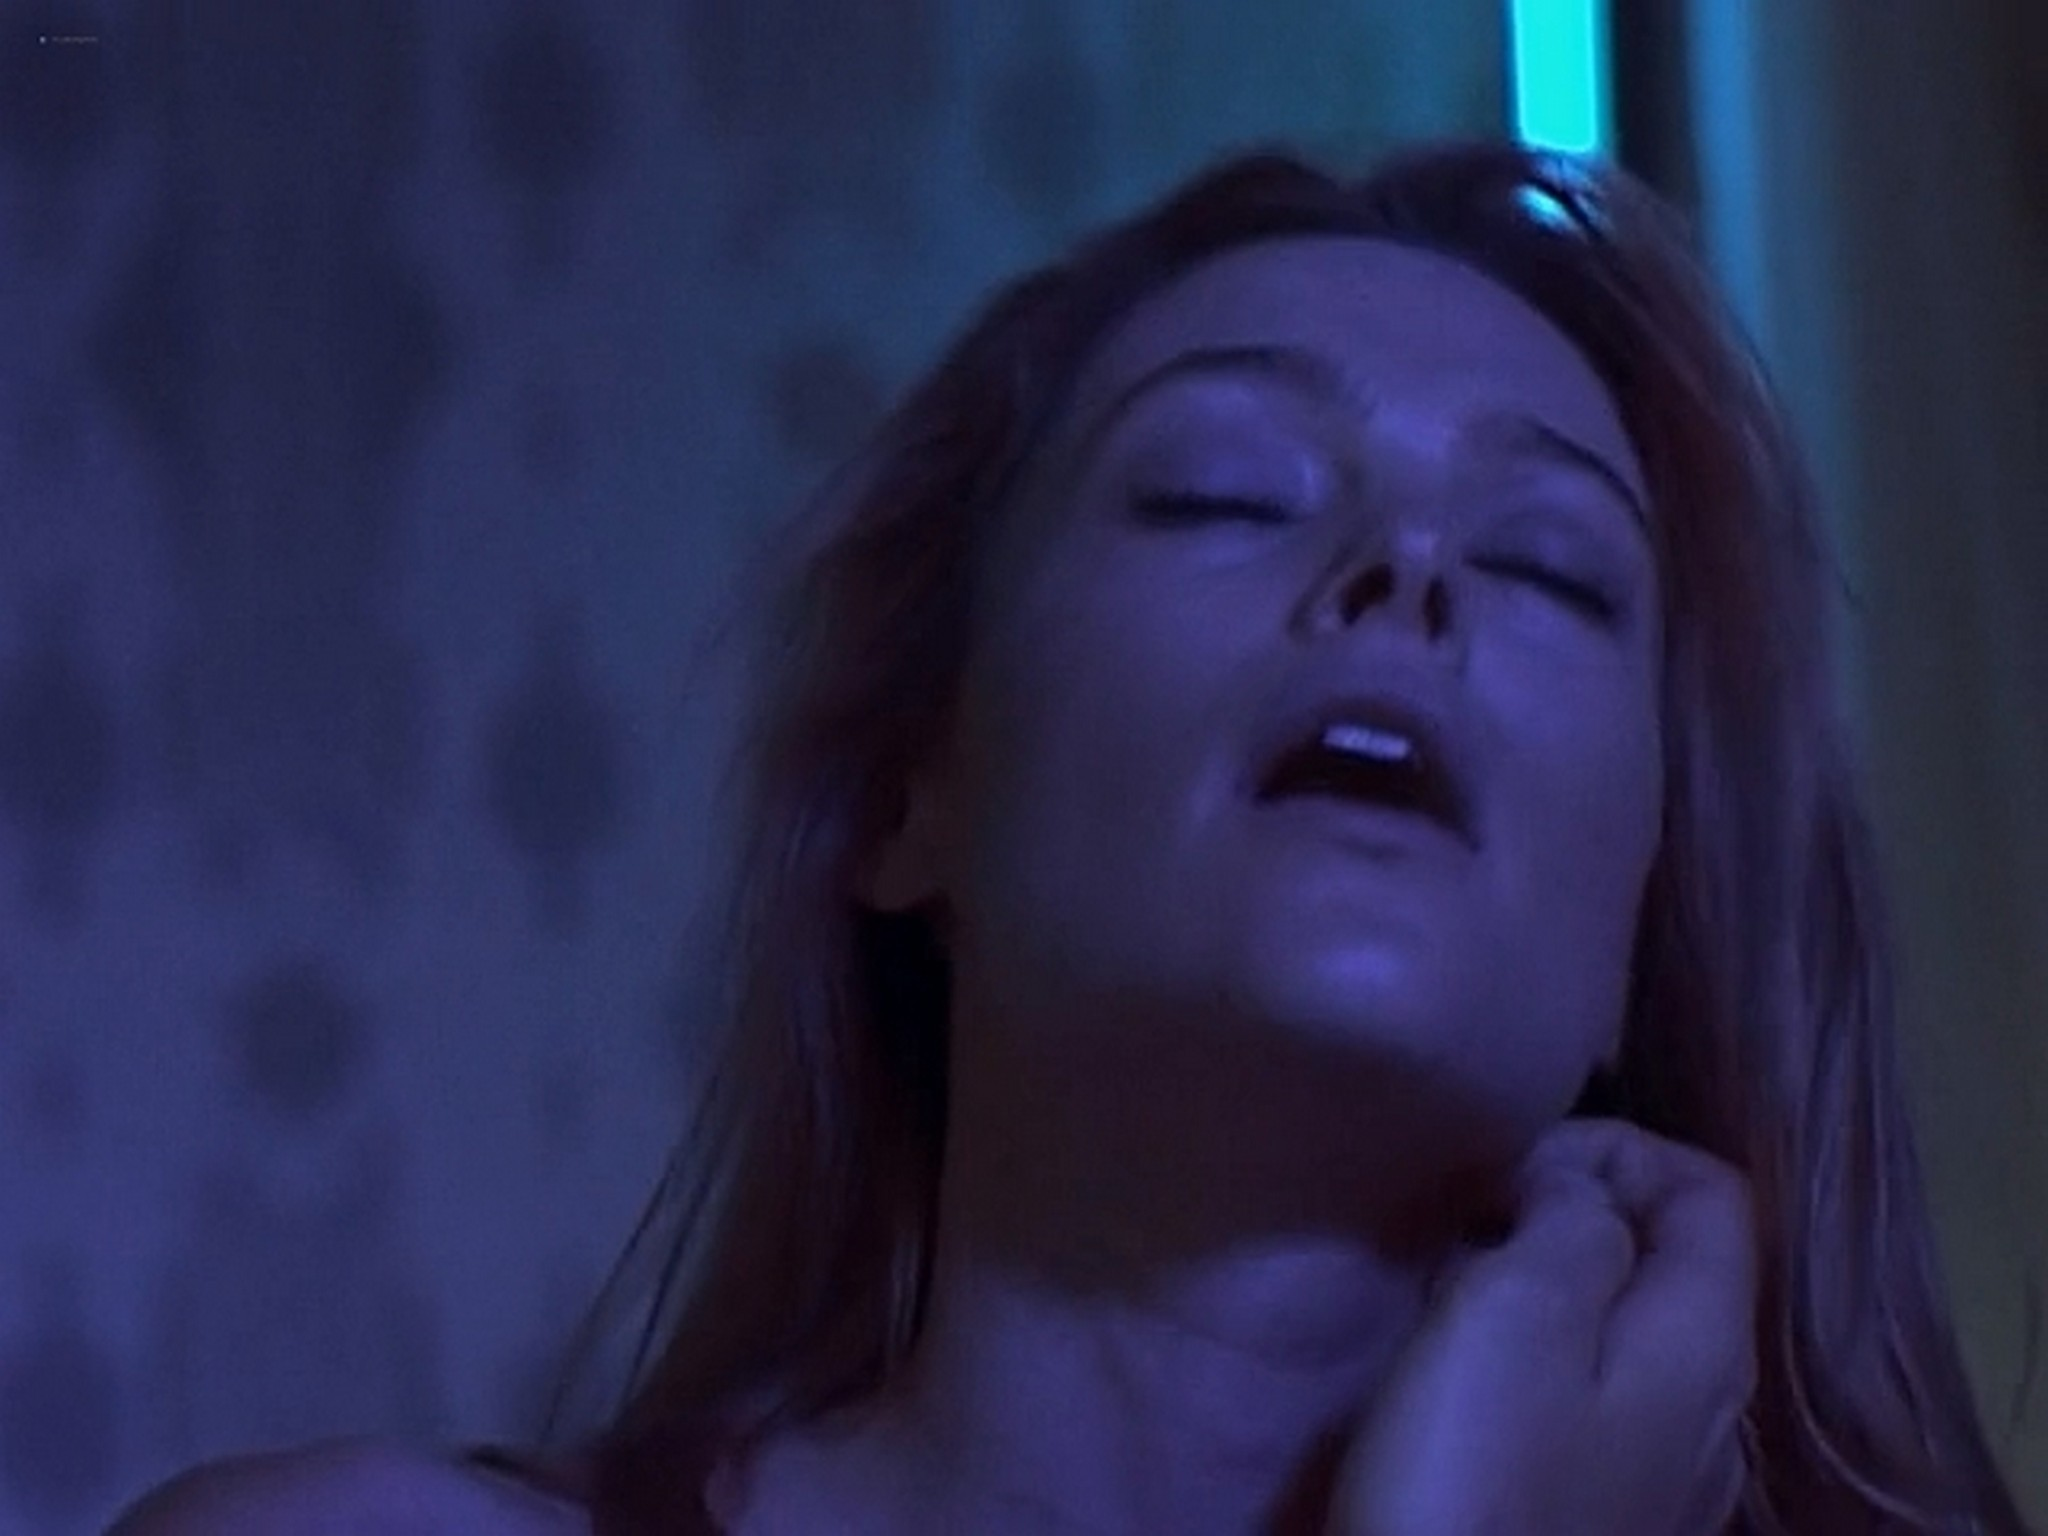 Caitlin Dulany nude sex Class of 1999 II The Substitute 1994 DVDRip 15